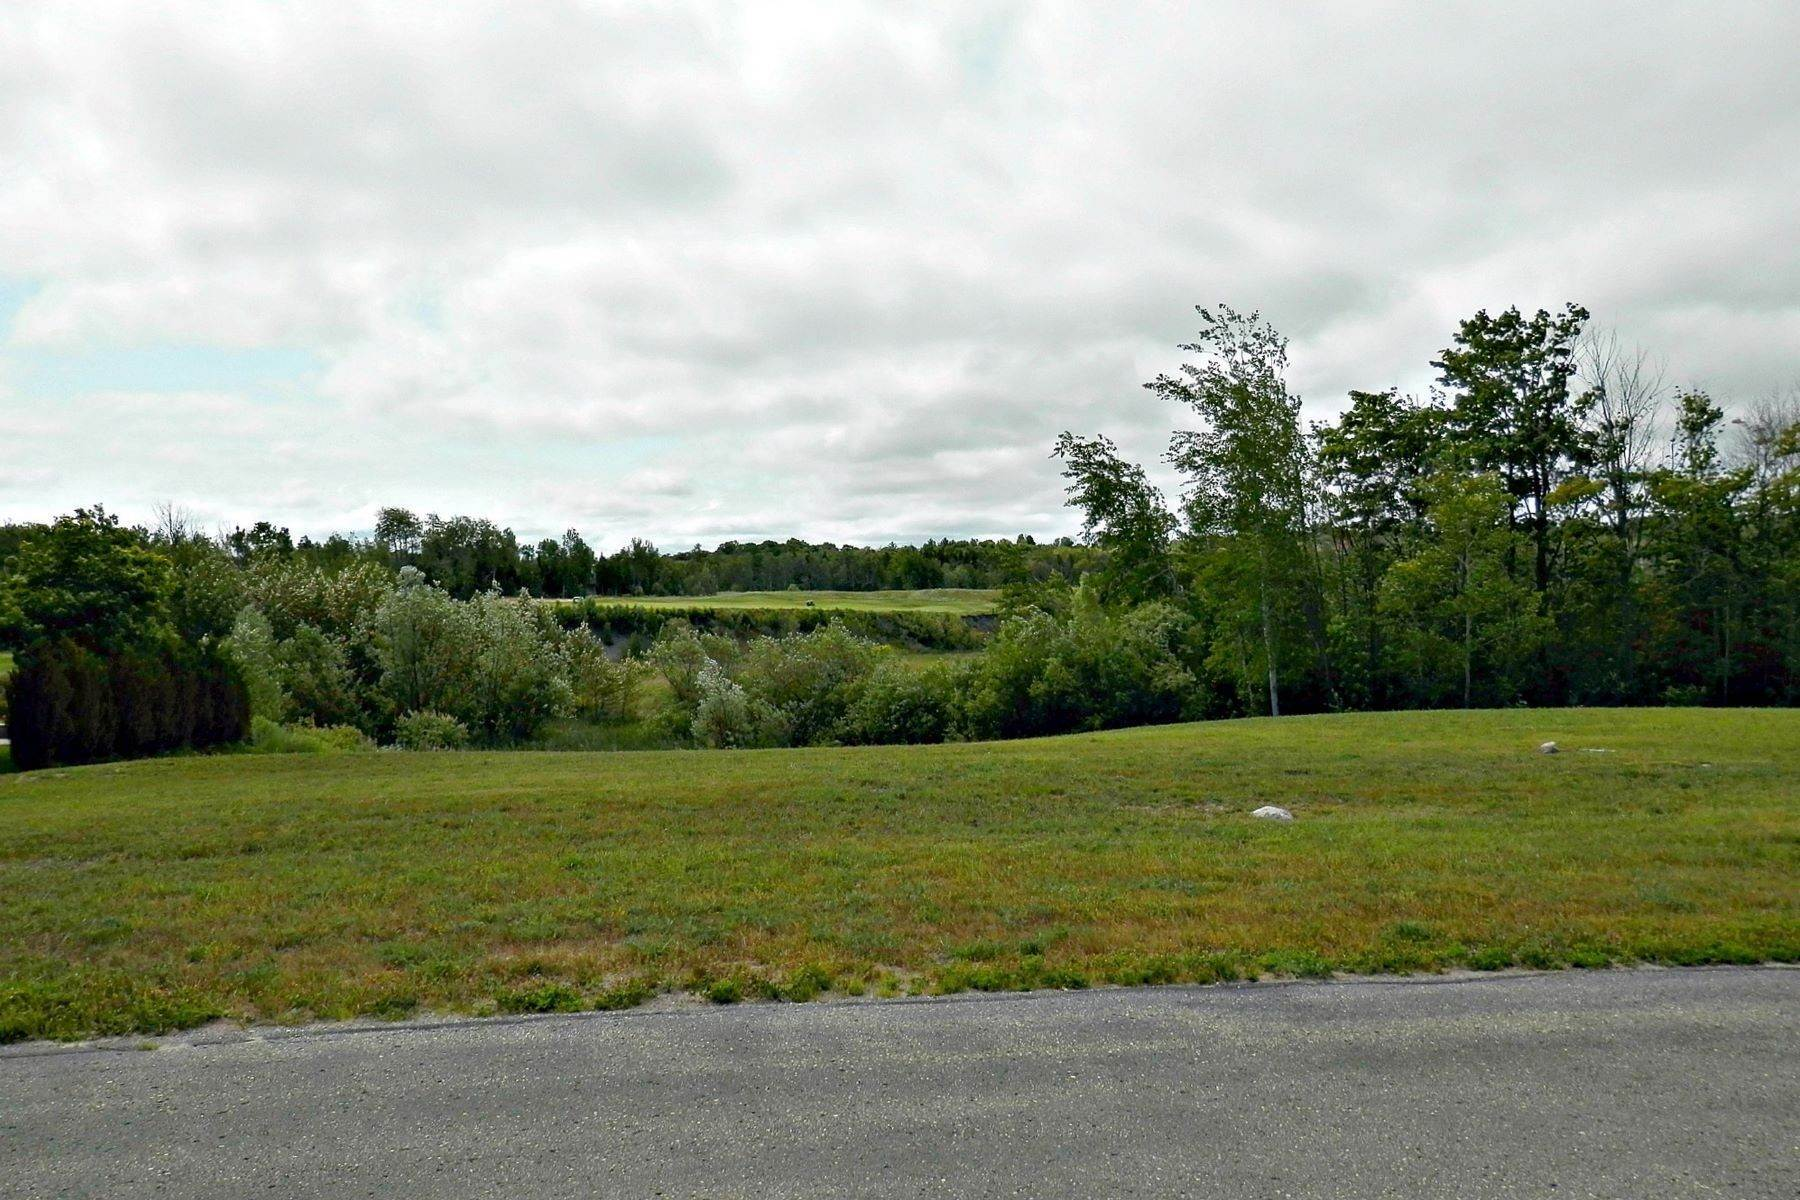 Land for Sale at Quarry Golf Course View Home Site 6283 Quarry View Court Bay Harbor, Michigan 49770 United States